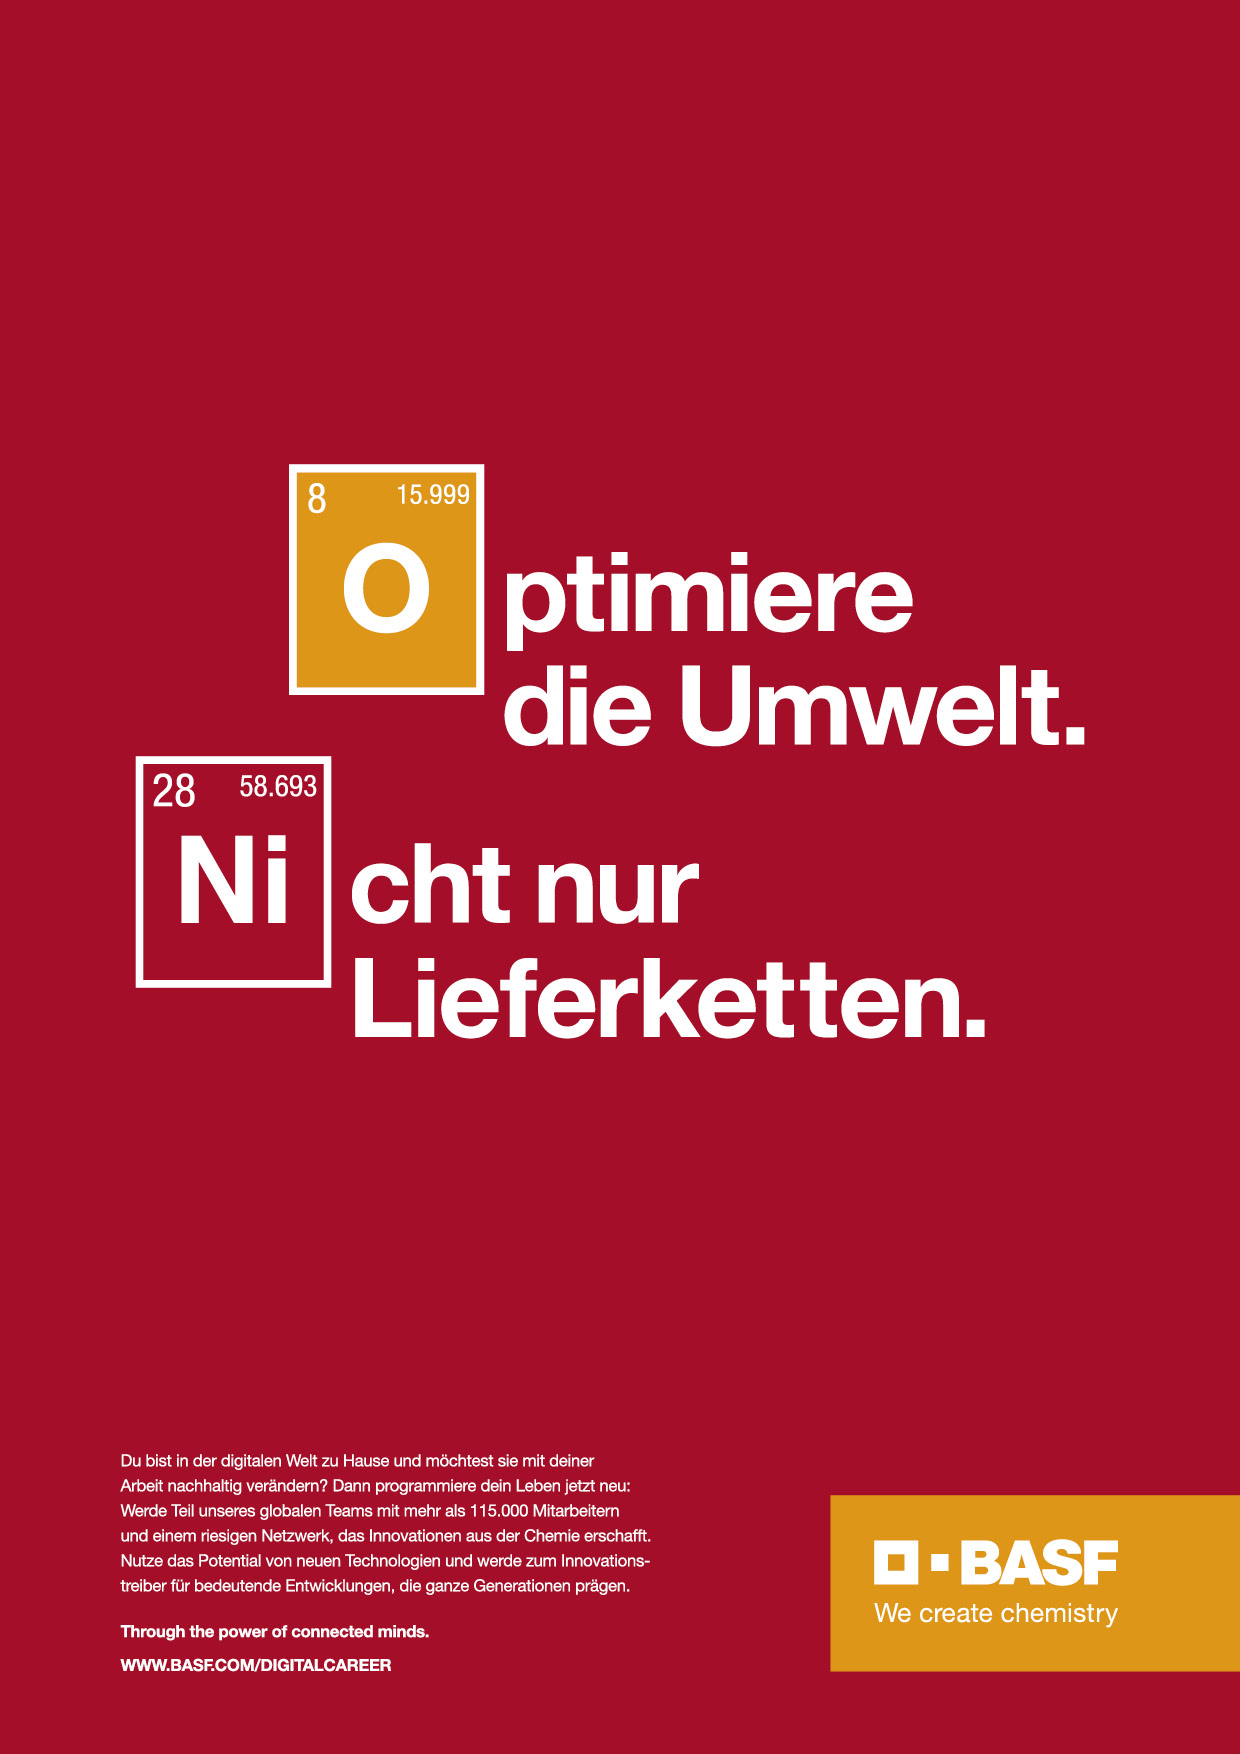 190205_BASF_210x297_Recruitment_Campaign_GER10.jpg